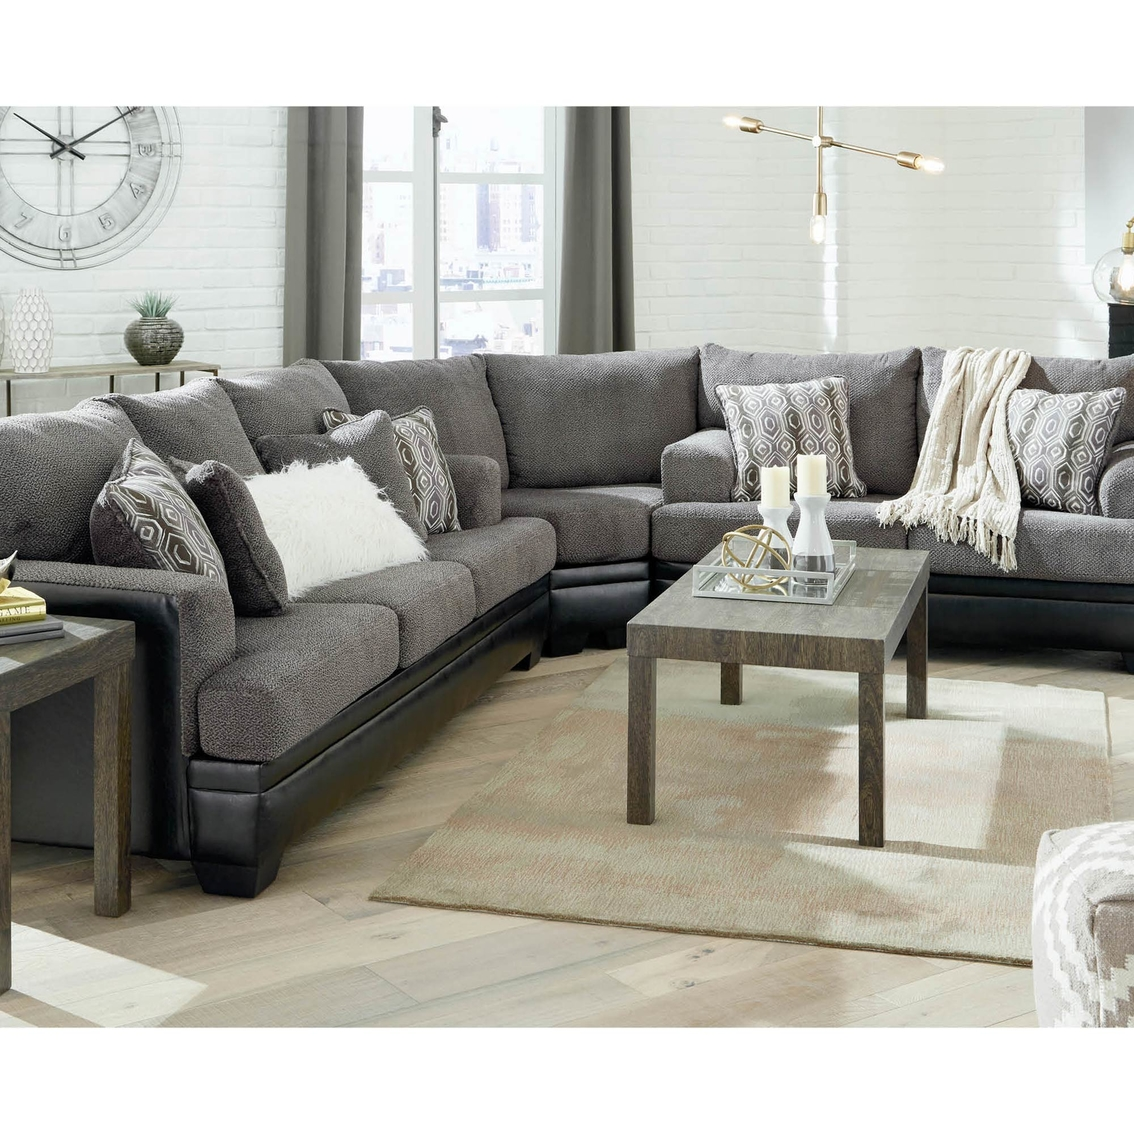 signature design by ashley millingar 3 pc sleeper sectional sofa loveseat wedge